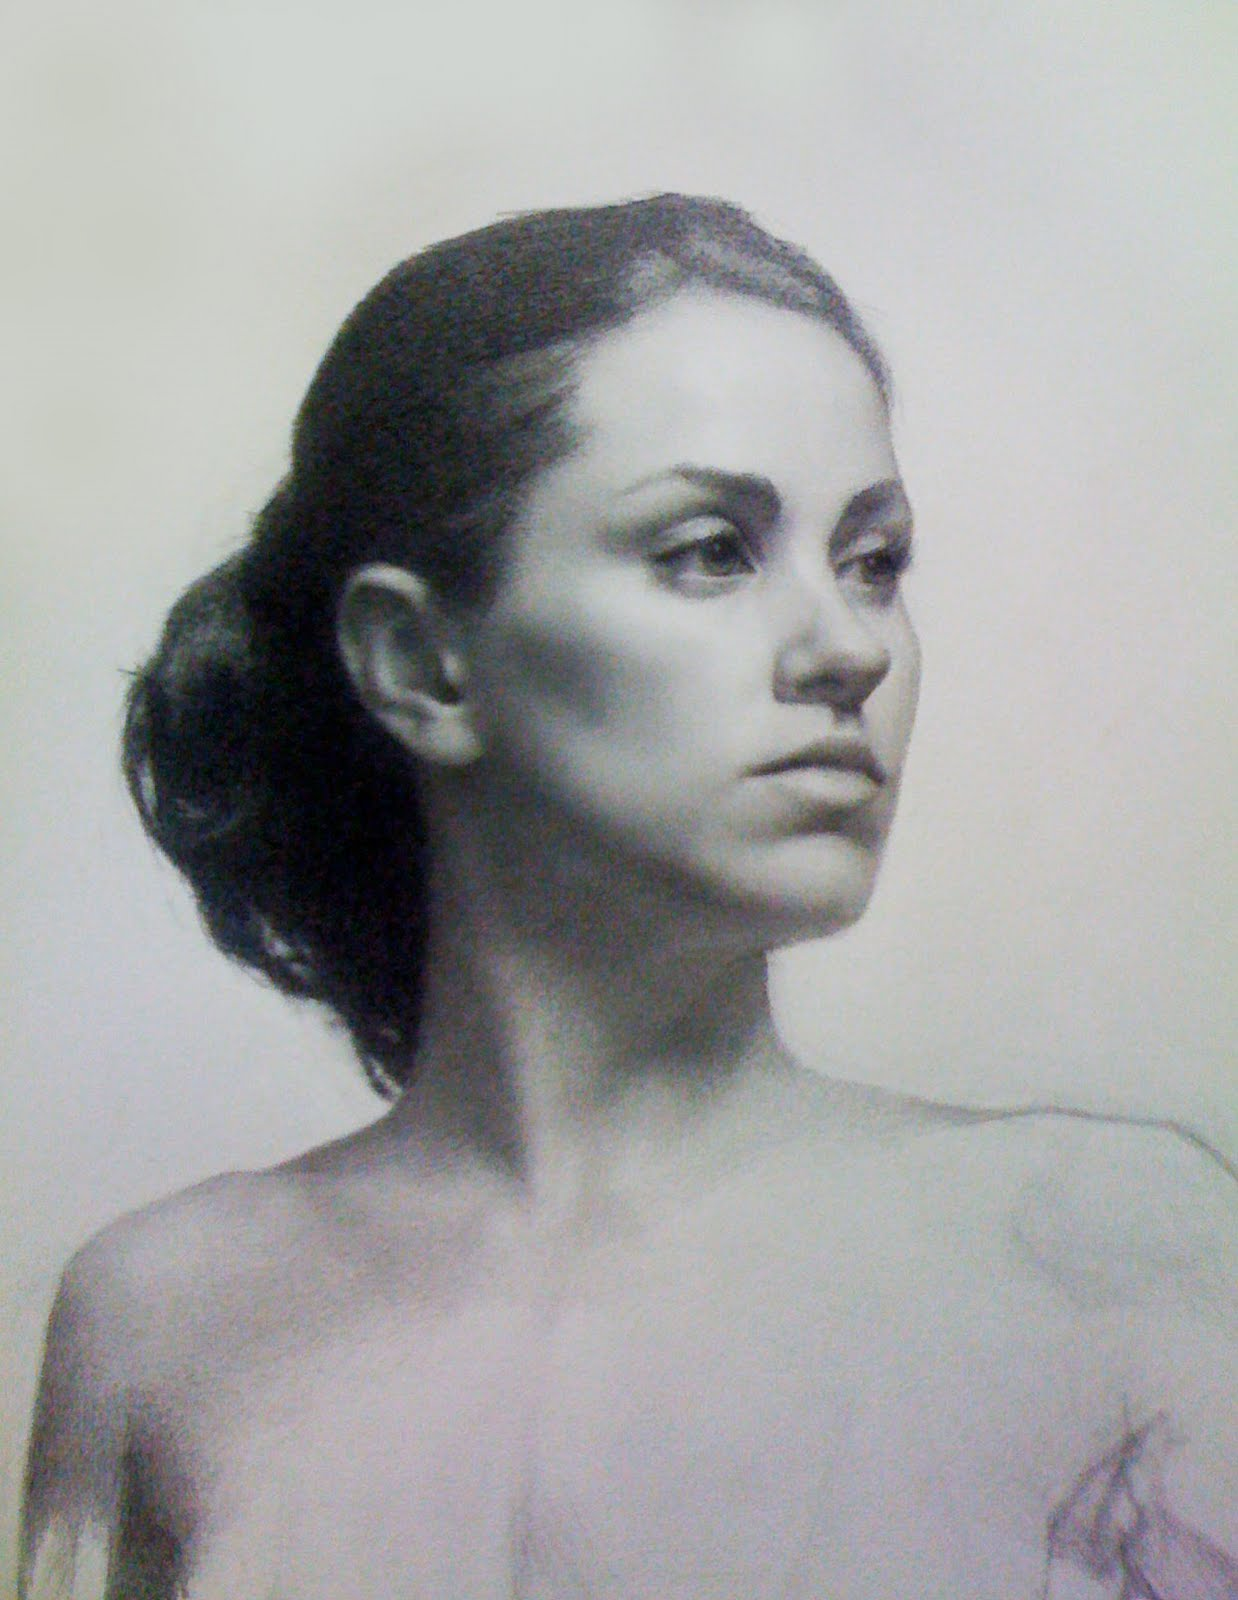 Confused about advanced graphite drawings